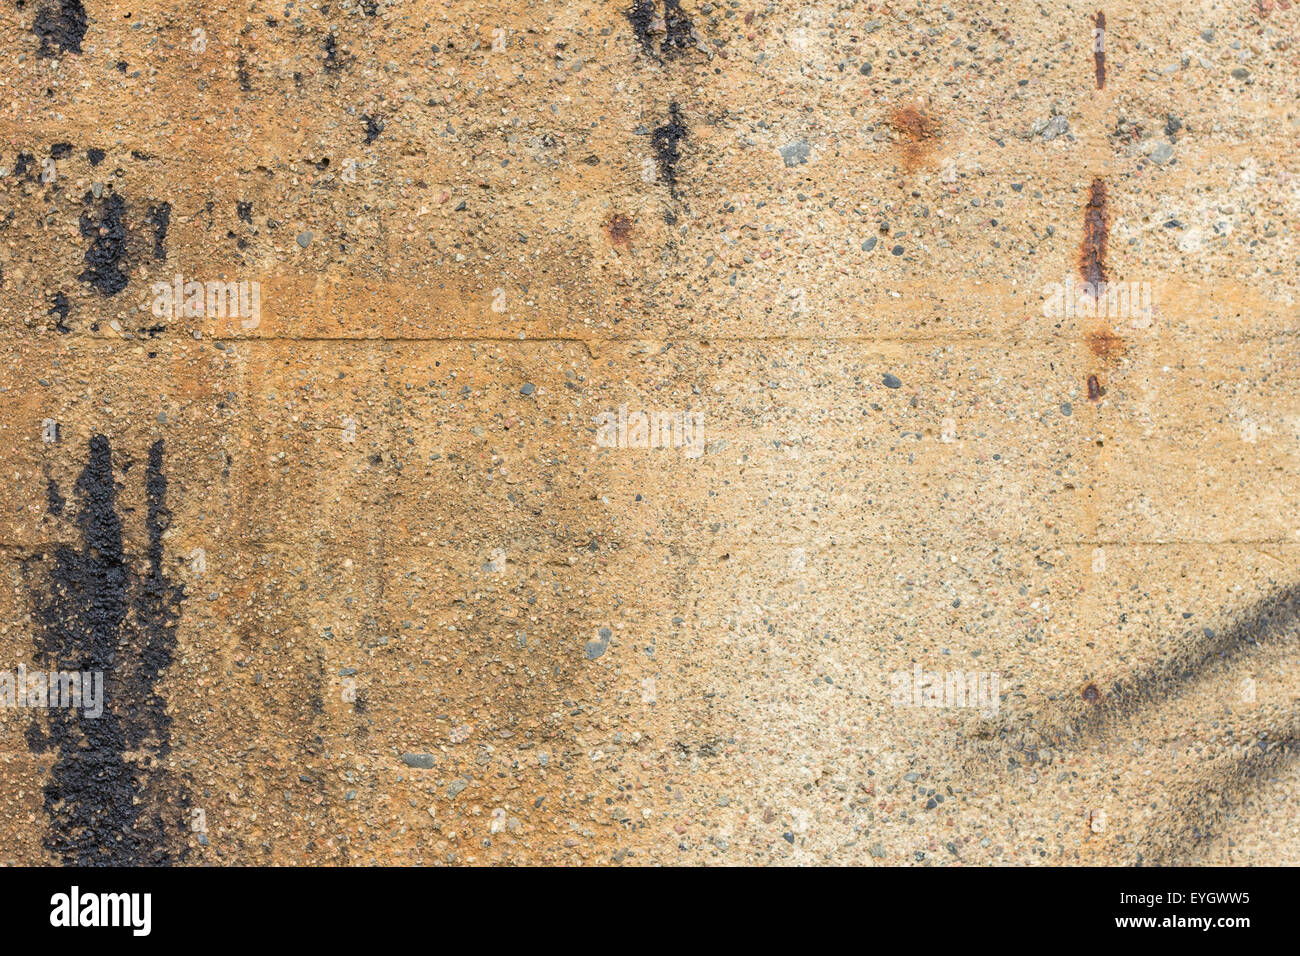 Close Up Of A Dirty Pale Brown Concrete Wall With Spray